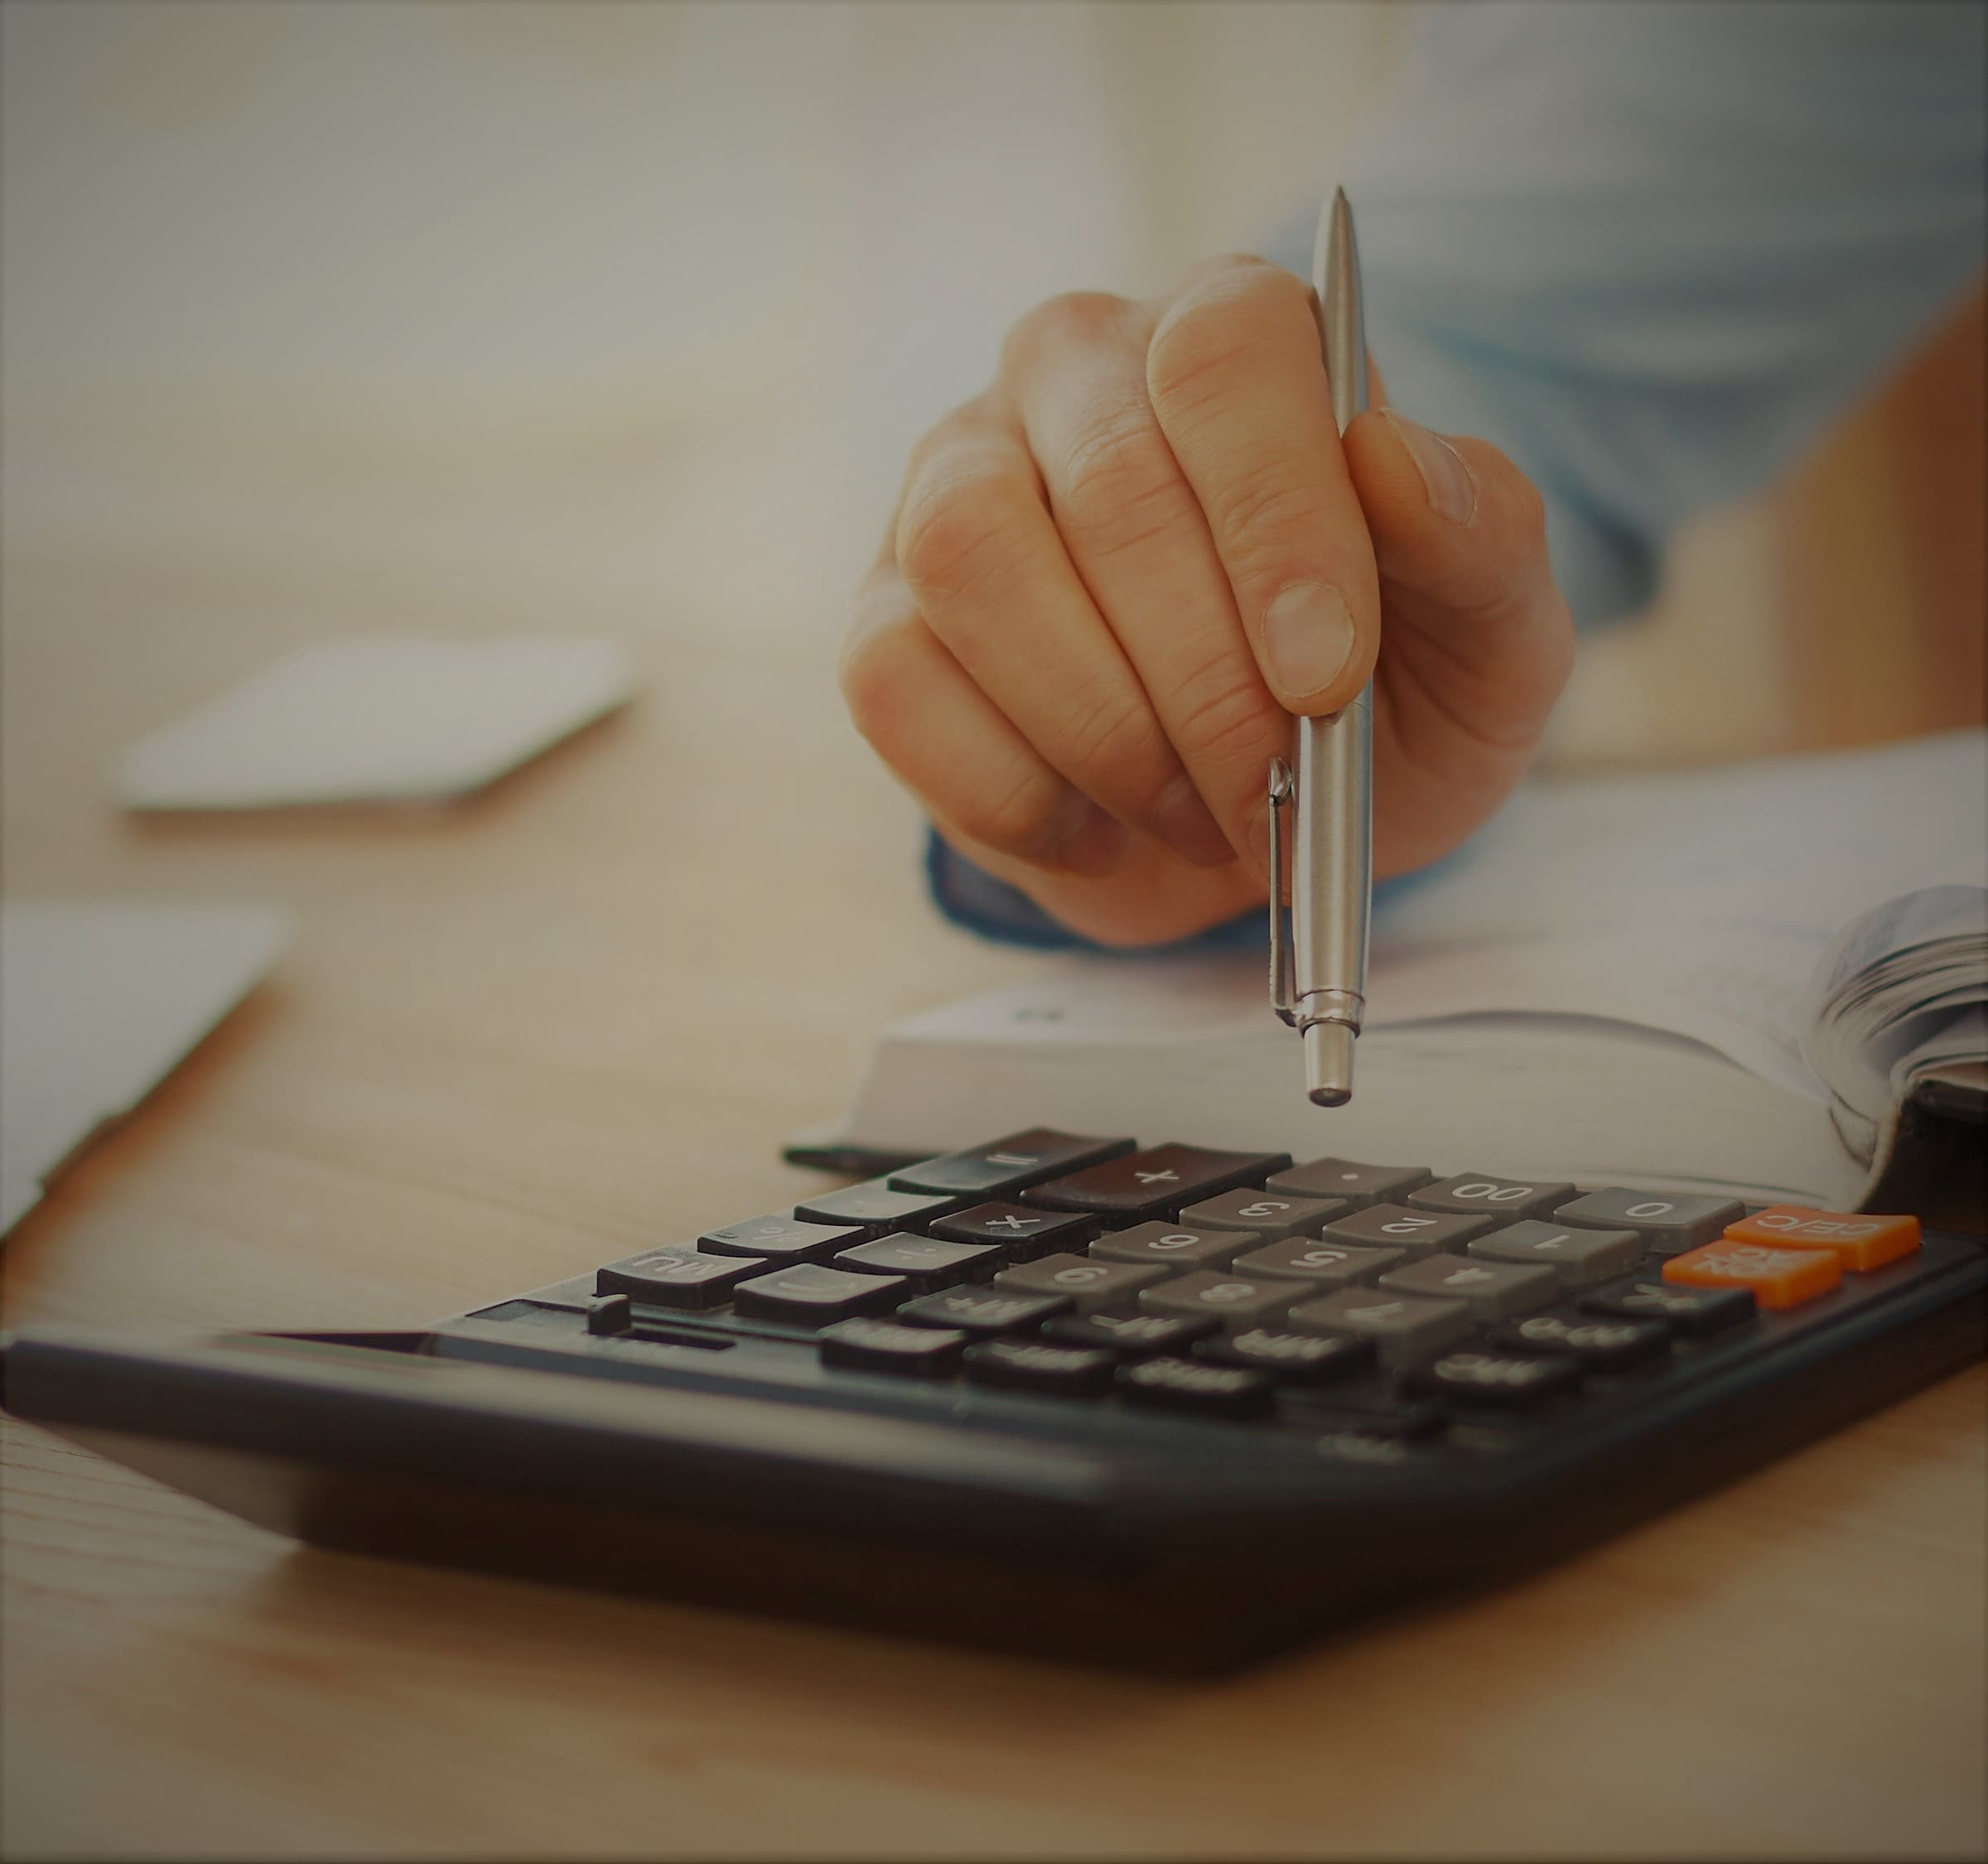 close-up-detail-of-professional-serious-accountant-sitting-in-light-office-checking-company-finance-profits-on-calculator-1.jpg